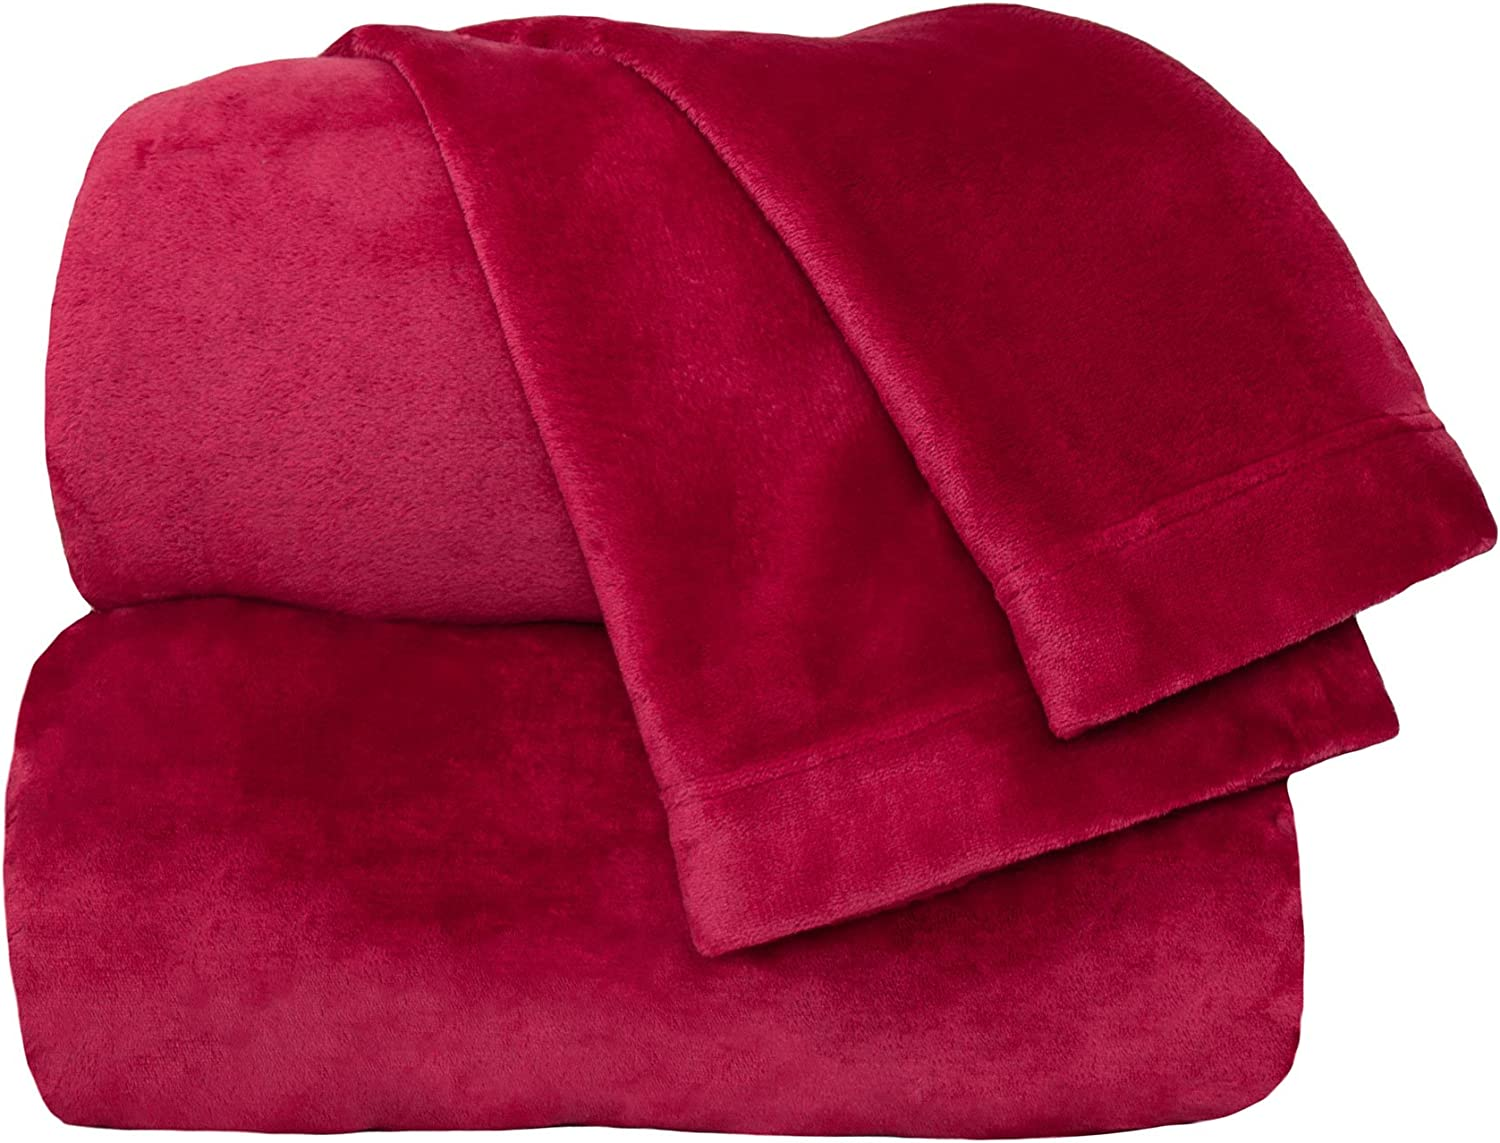 Outlet sale feature Cozy Fleece Velvet Plush Comfort with Cheap mail order shopping Soft Collection Set Sheet